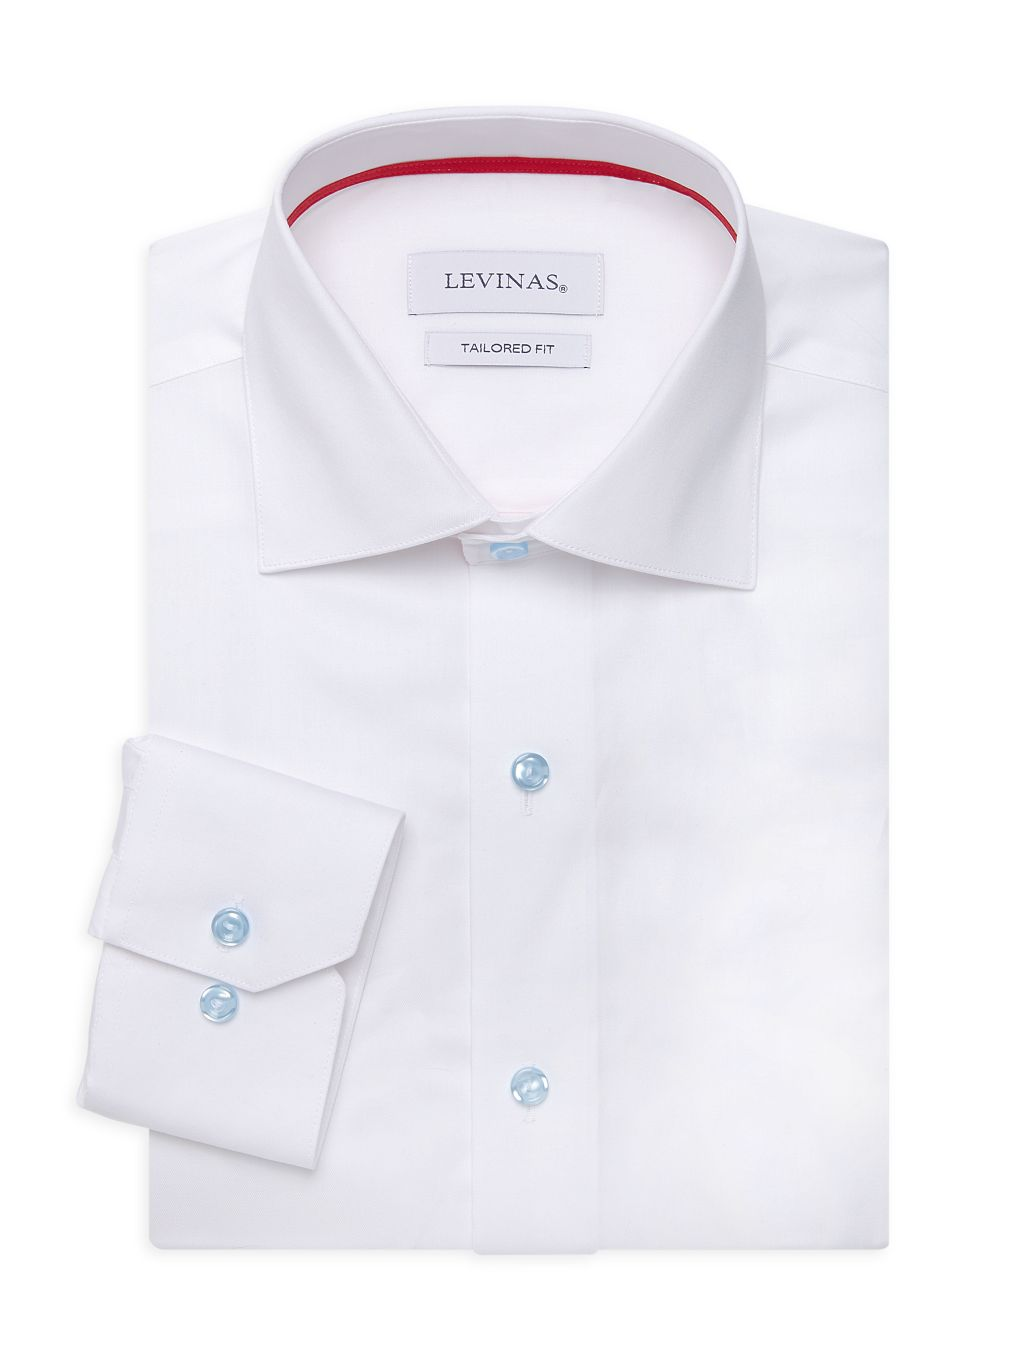 Levinas Tailored-Fit Dress Shirt